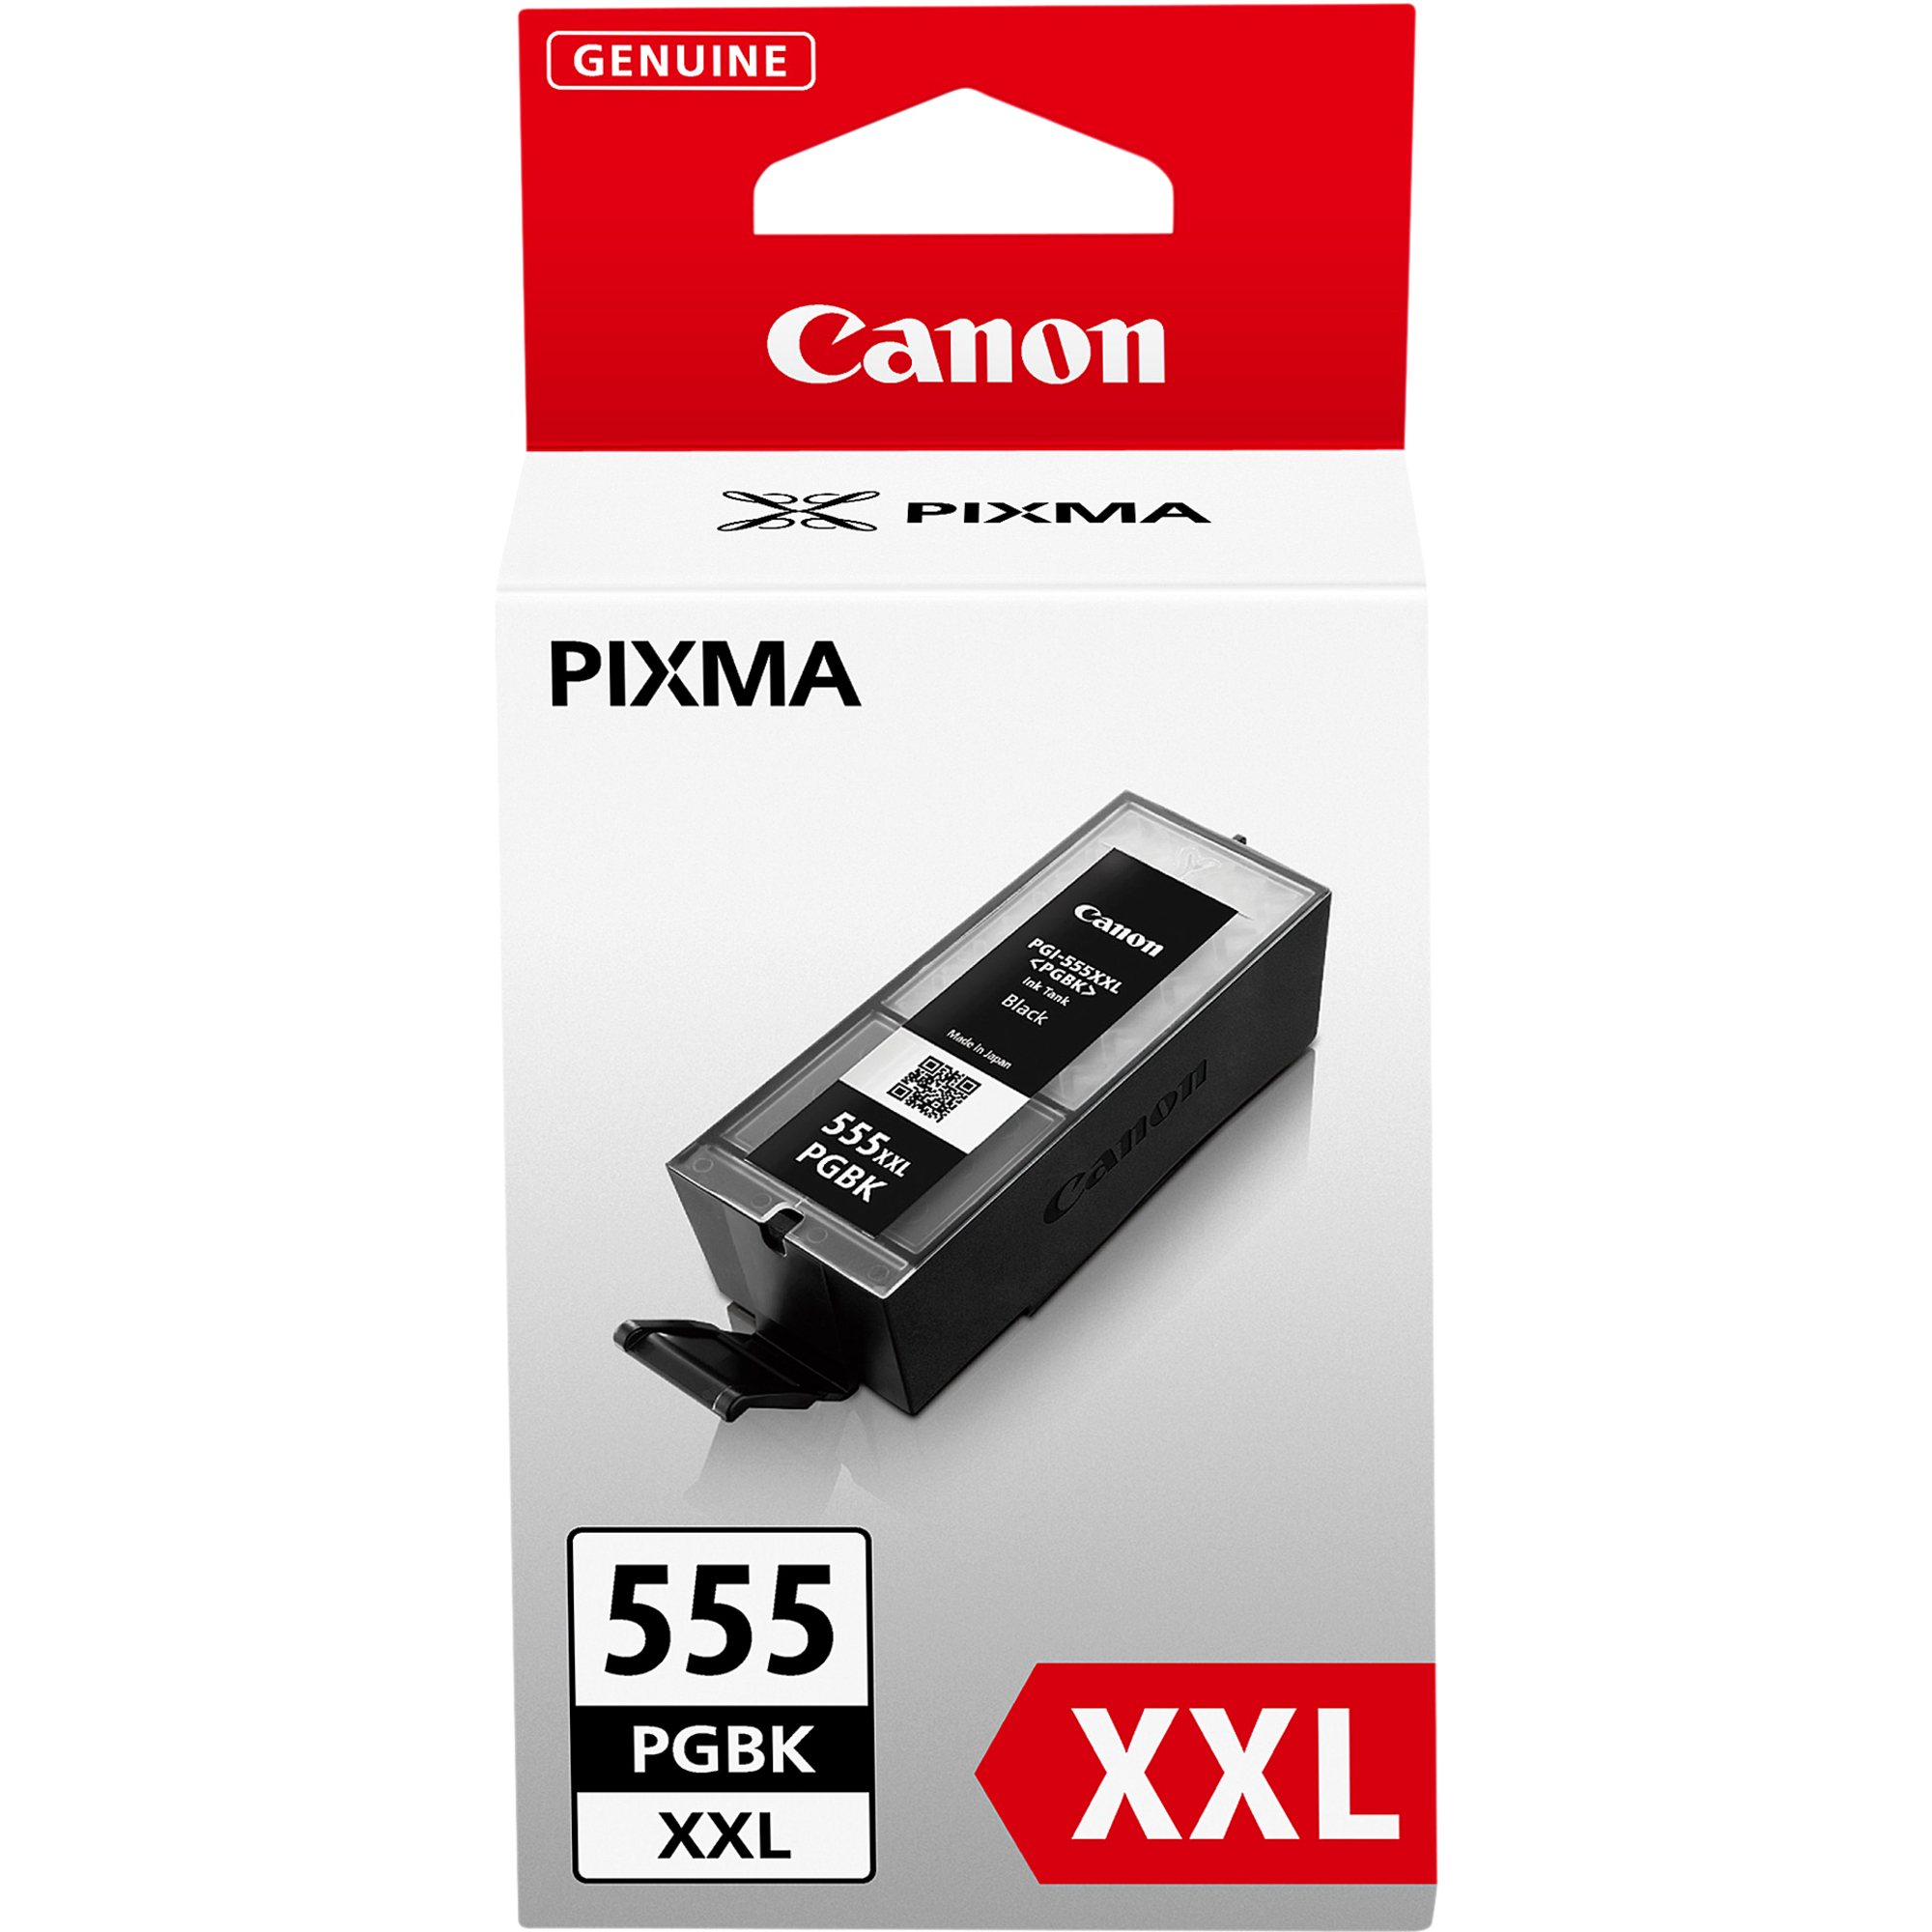 Canon PGI 555PGBK XXL Ink Cartridge - Pigment Black